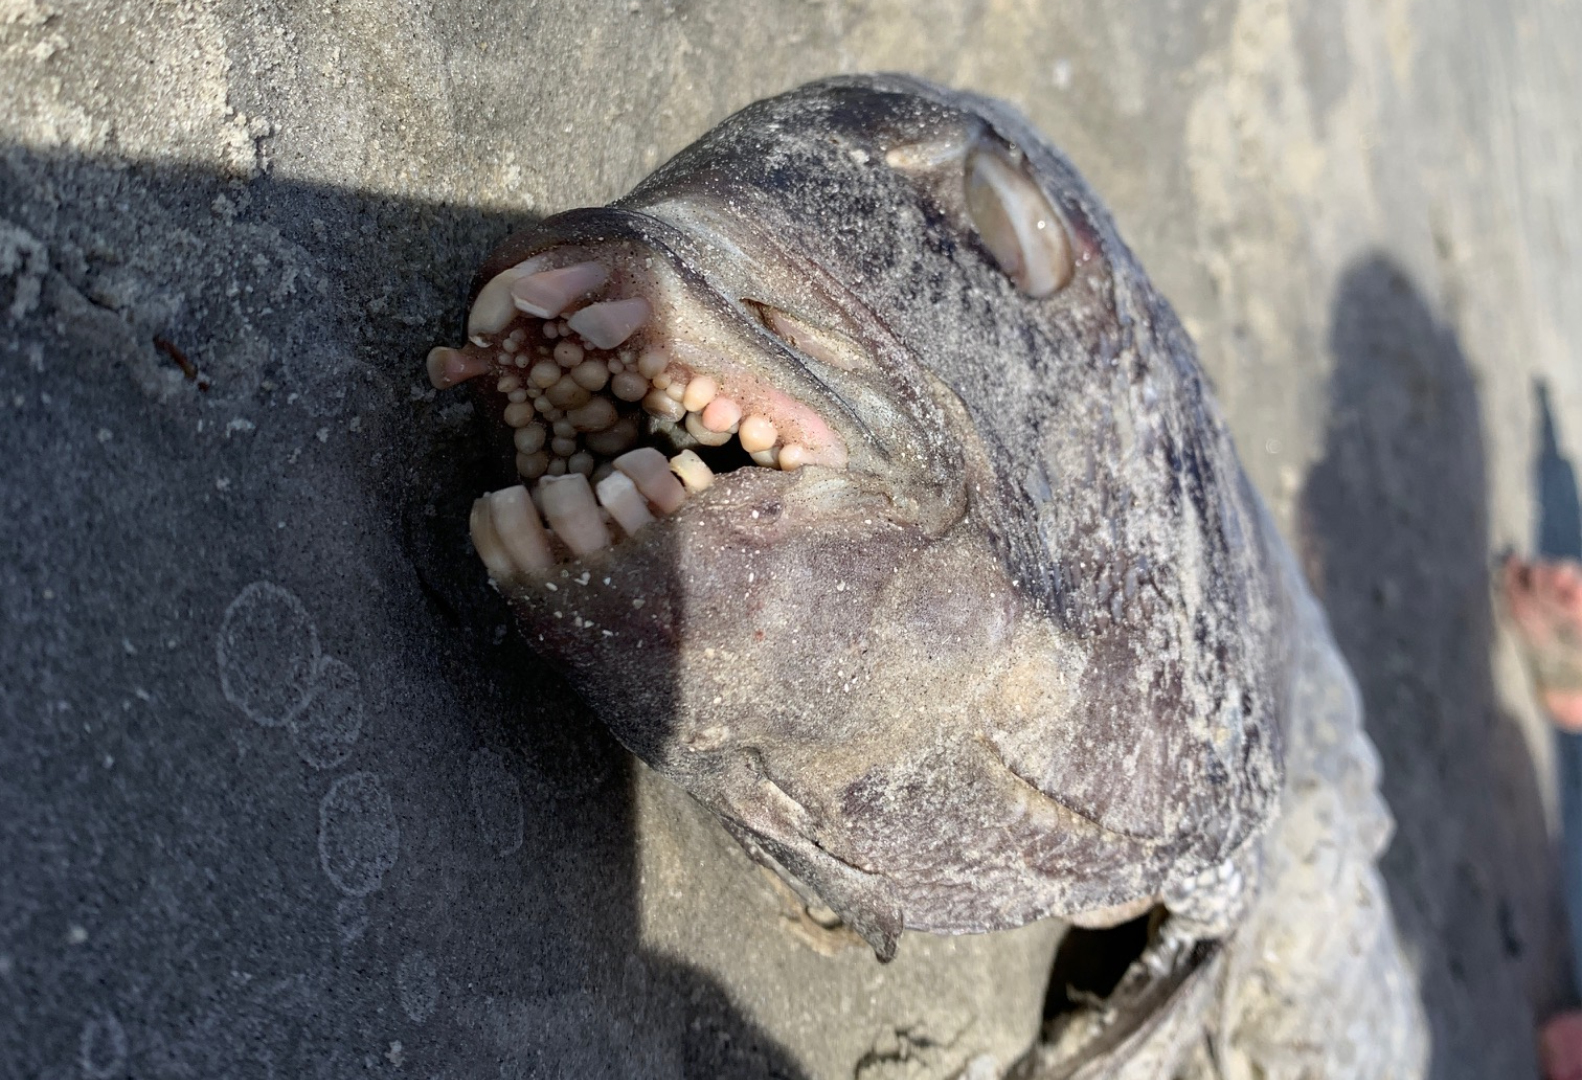 The Sheepshead is known for its strange teeth which they use to chew on shrimps and crabs. Credit: Pen News